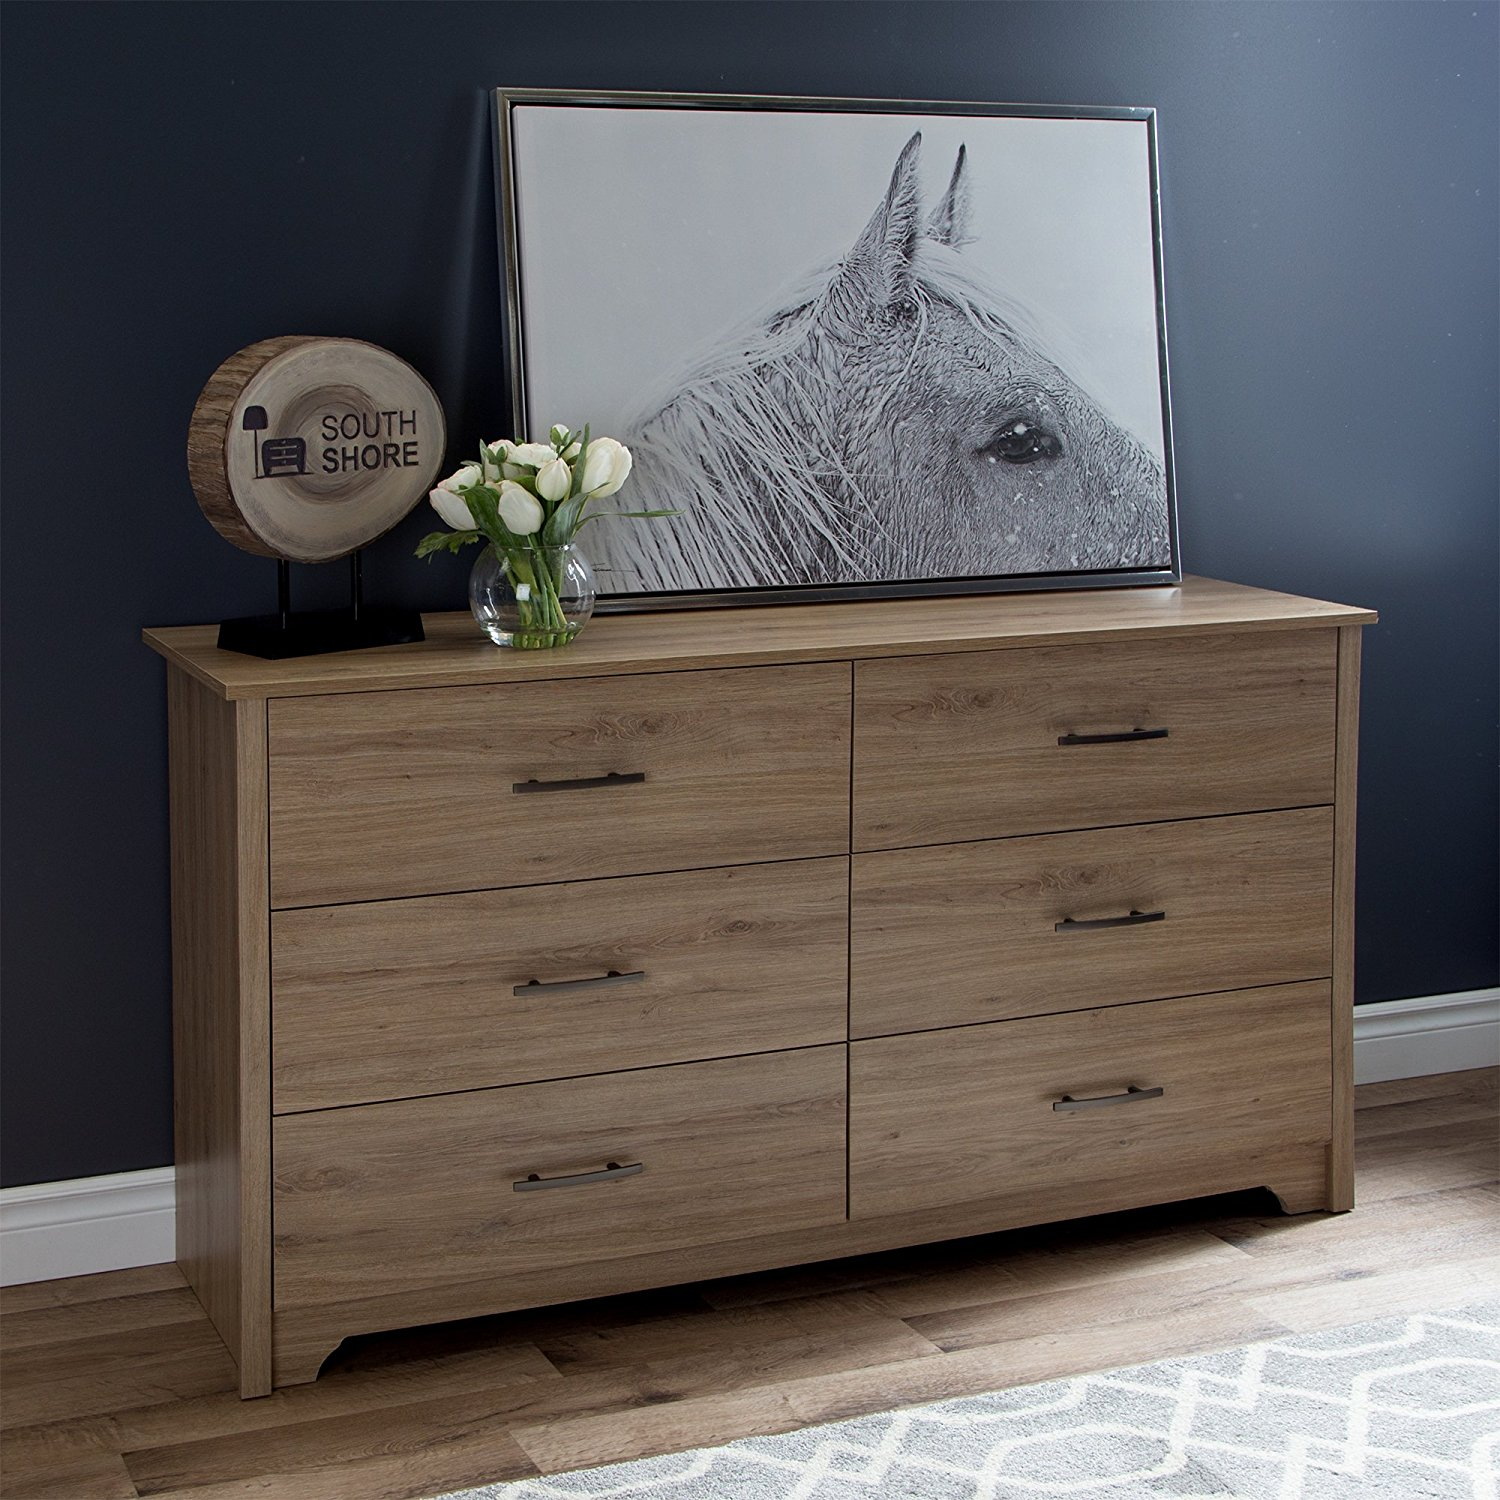 Image of: Modern Rustic Dressers in Home